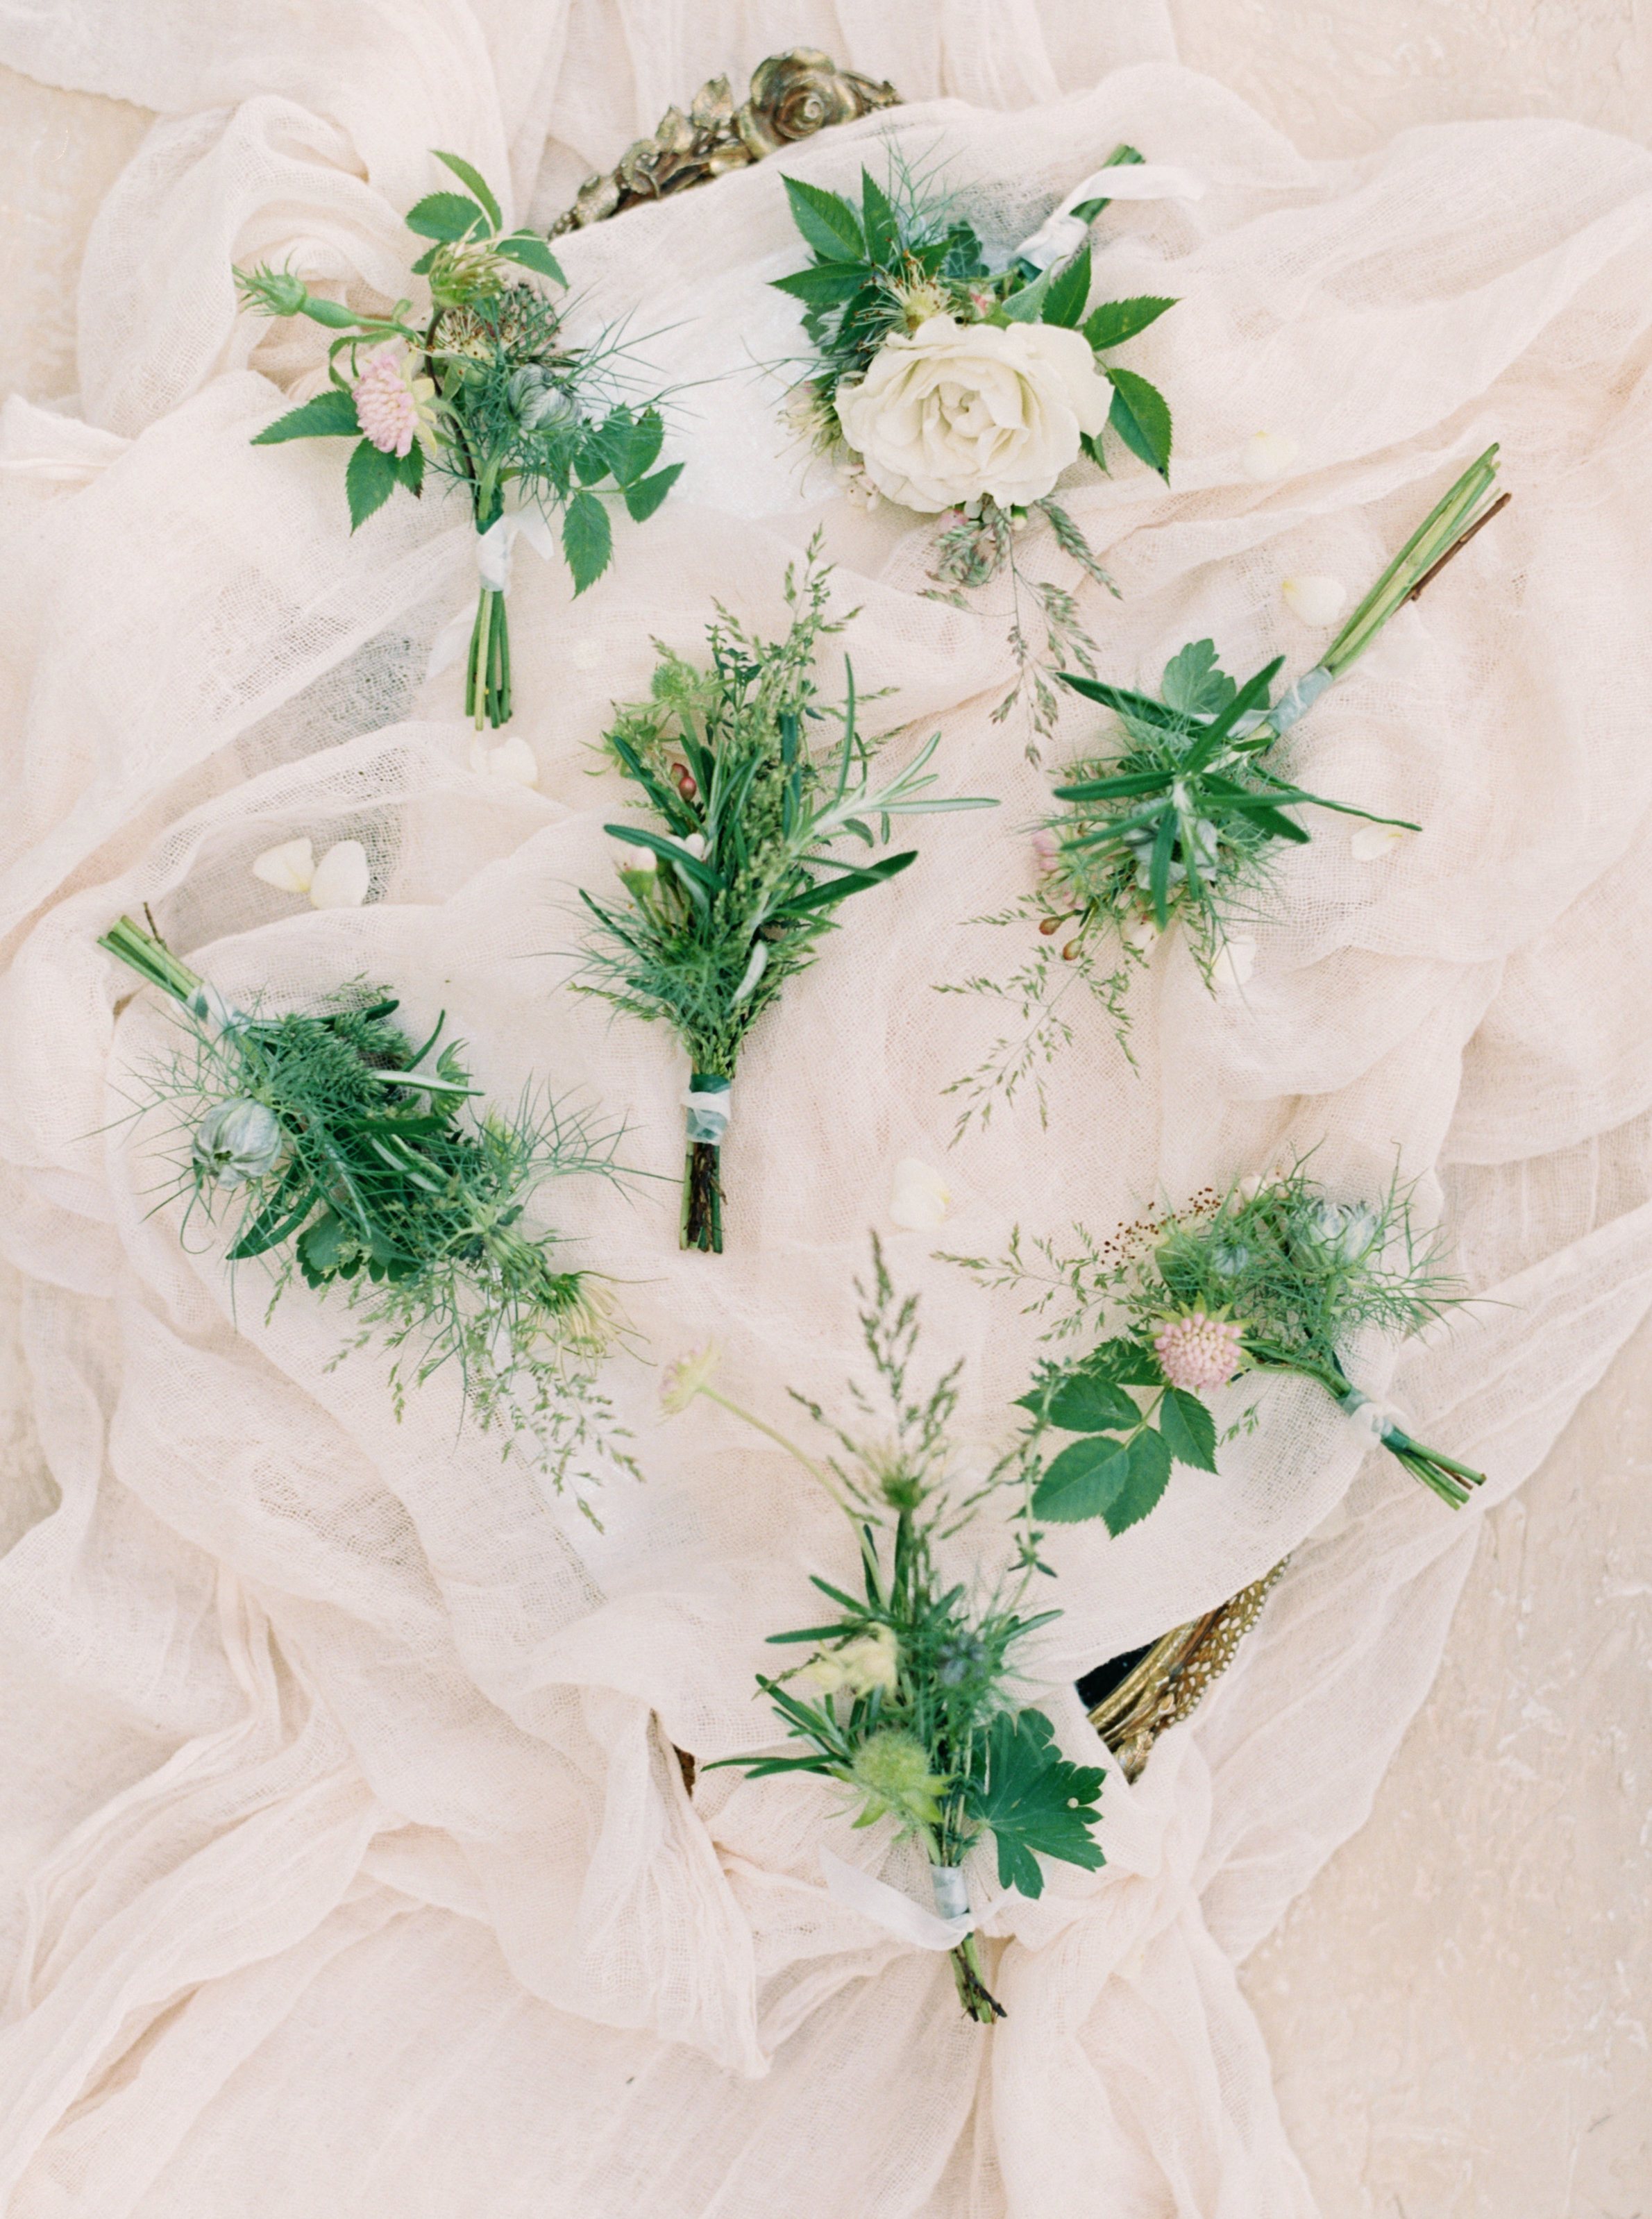 Lily & Sage_Luxury Wedding Planner UK_English Country House Wedding Boutonnières Buttonholes White and Silver Toned Green Neutral Wedding North Cadbury Court_Nicole Colwell Photography-0497.jpg